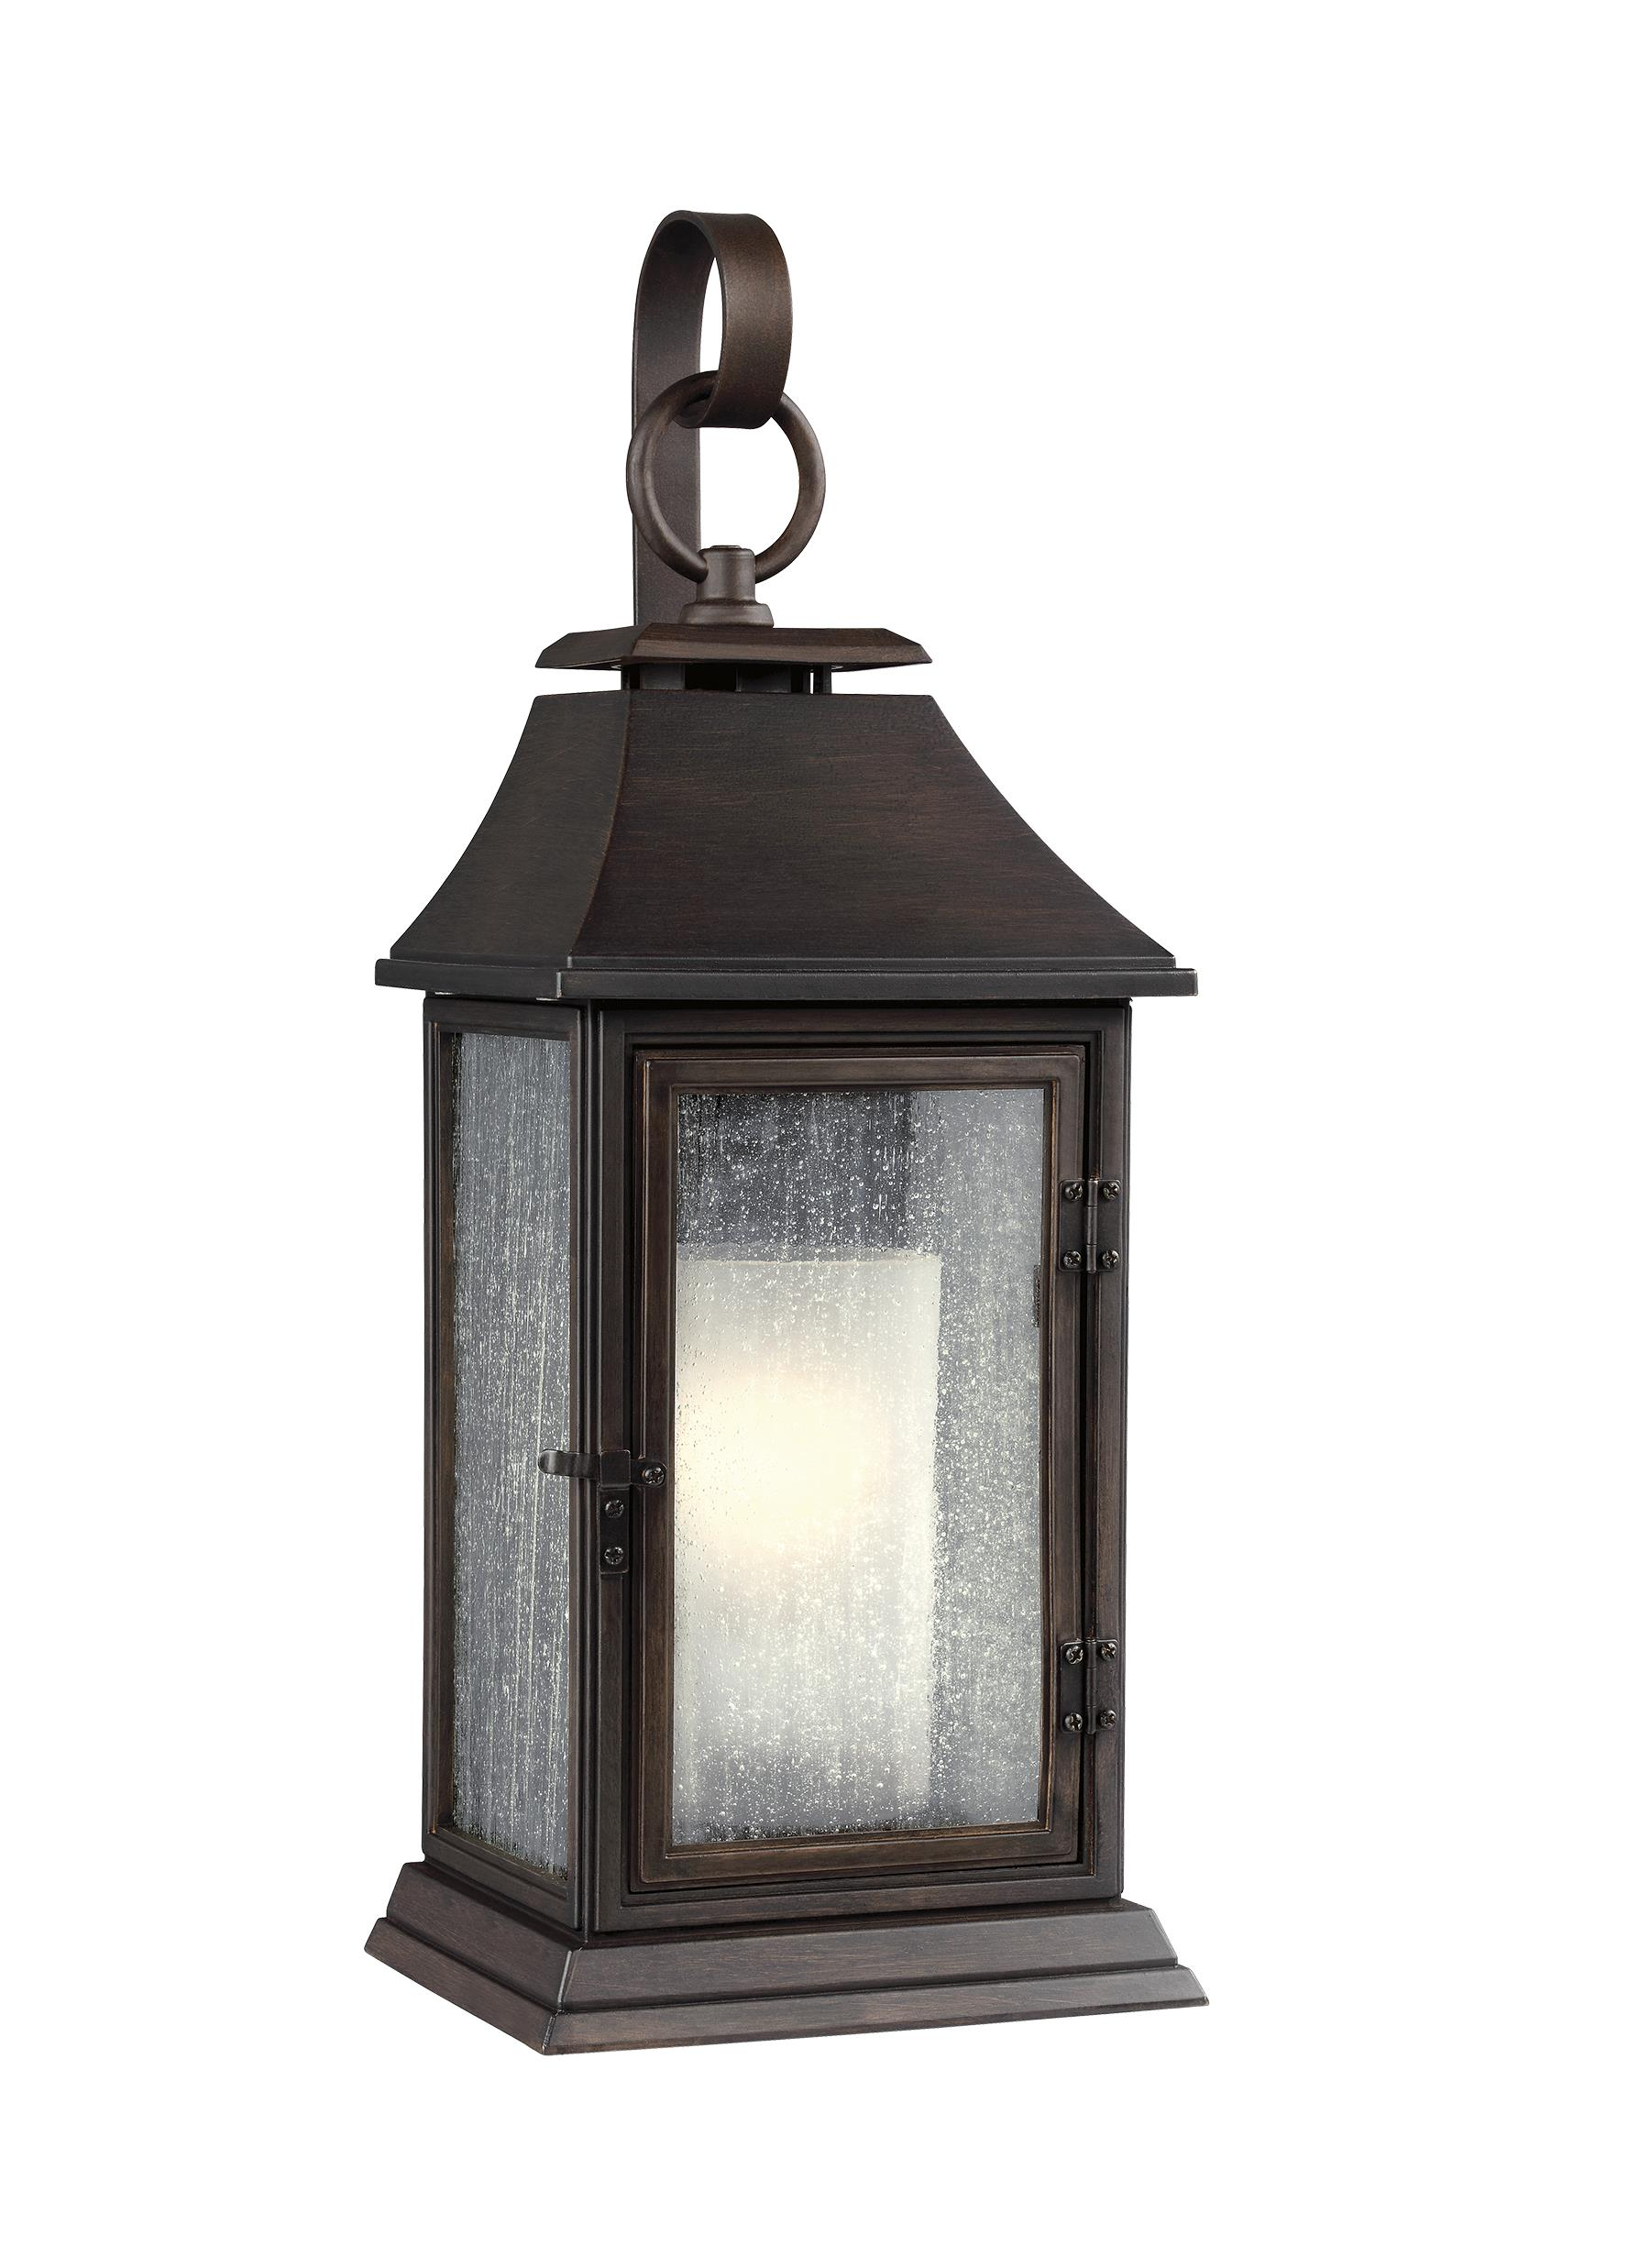 cfm lighting sconce troy wilmington inch outdoor light wide wall item